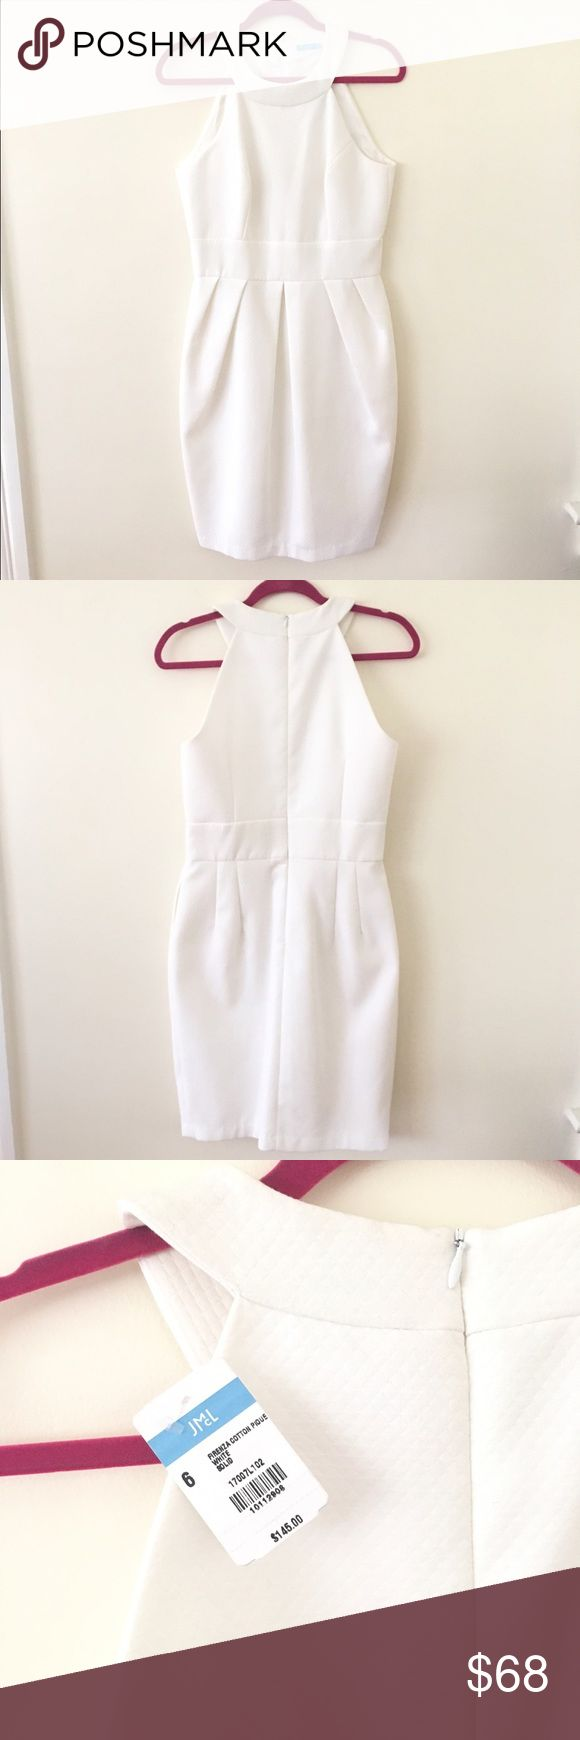 NWT, J.McLaughlin Dress White ponte J.McLaughlin halter style dress, new with tags. Zips and clasps in back. Fitted at the waist. Perfect for summer. J. McLaughlin Dresses Midi